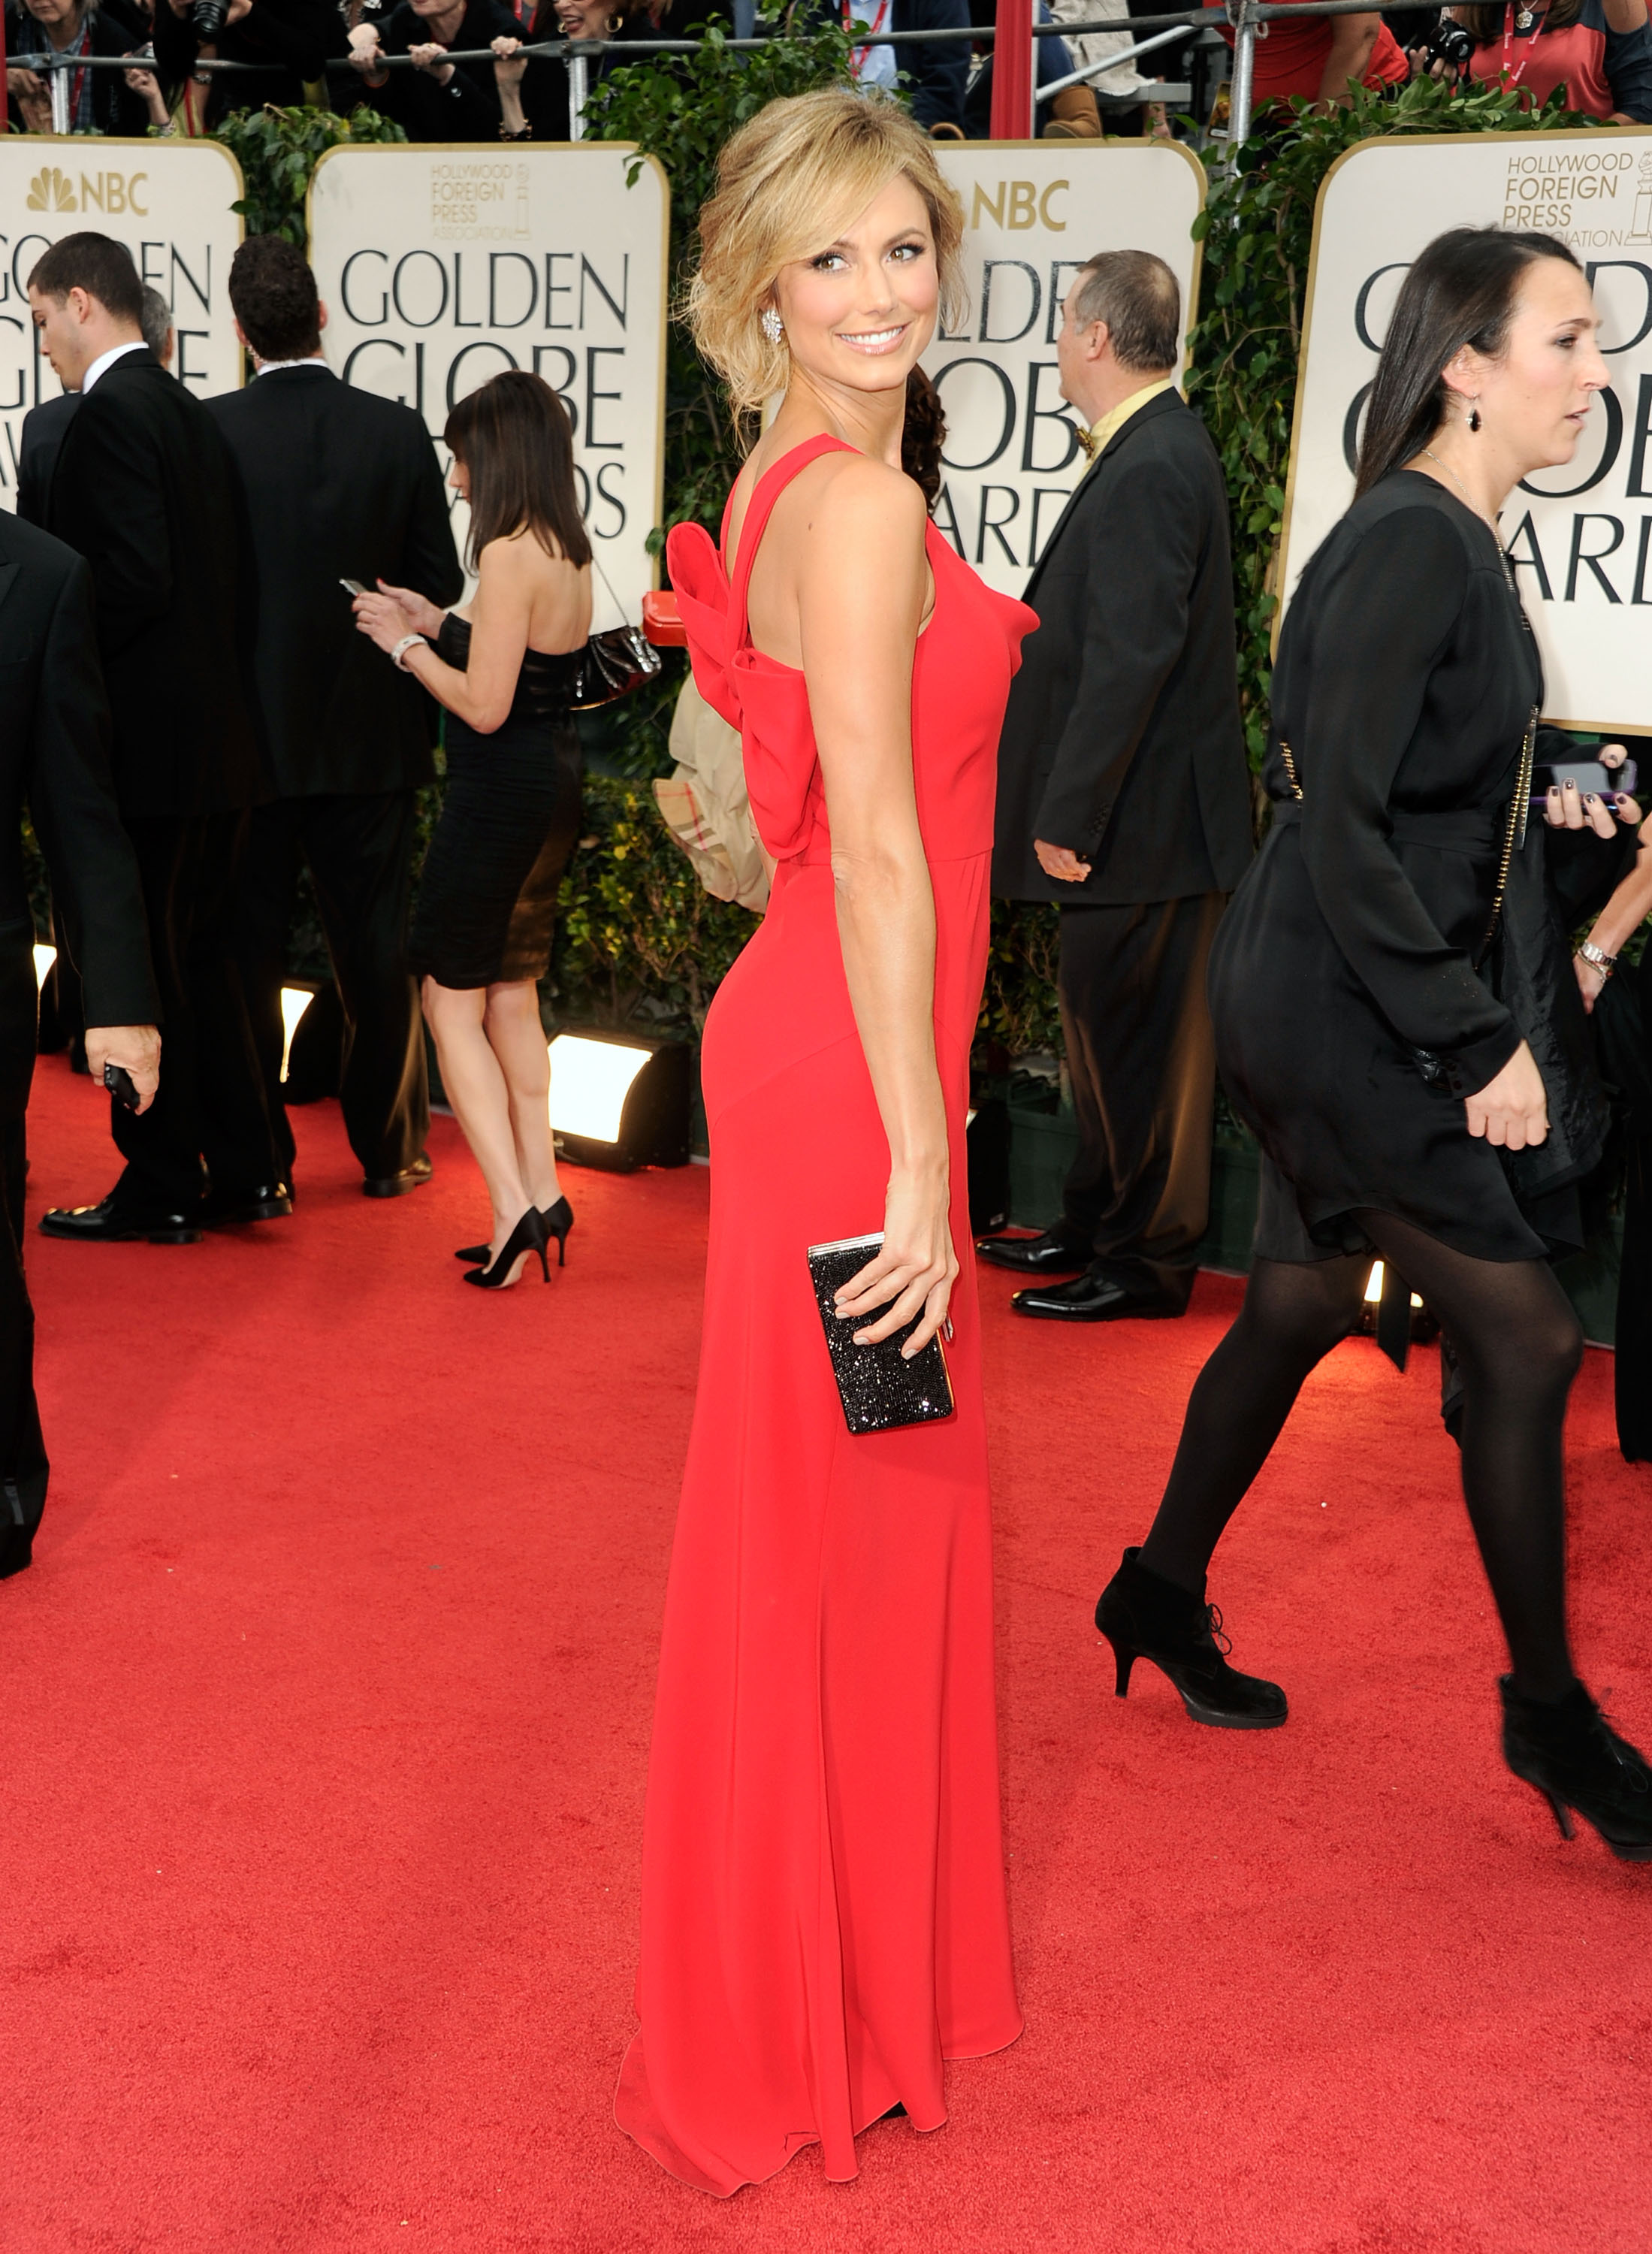 Stacy Keibler at the Golden Globes.